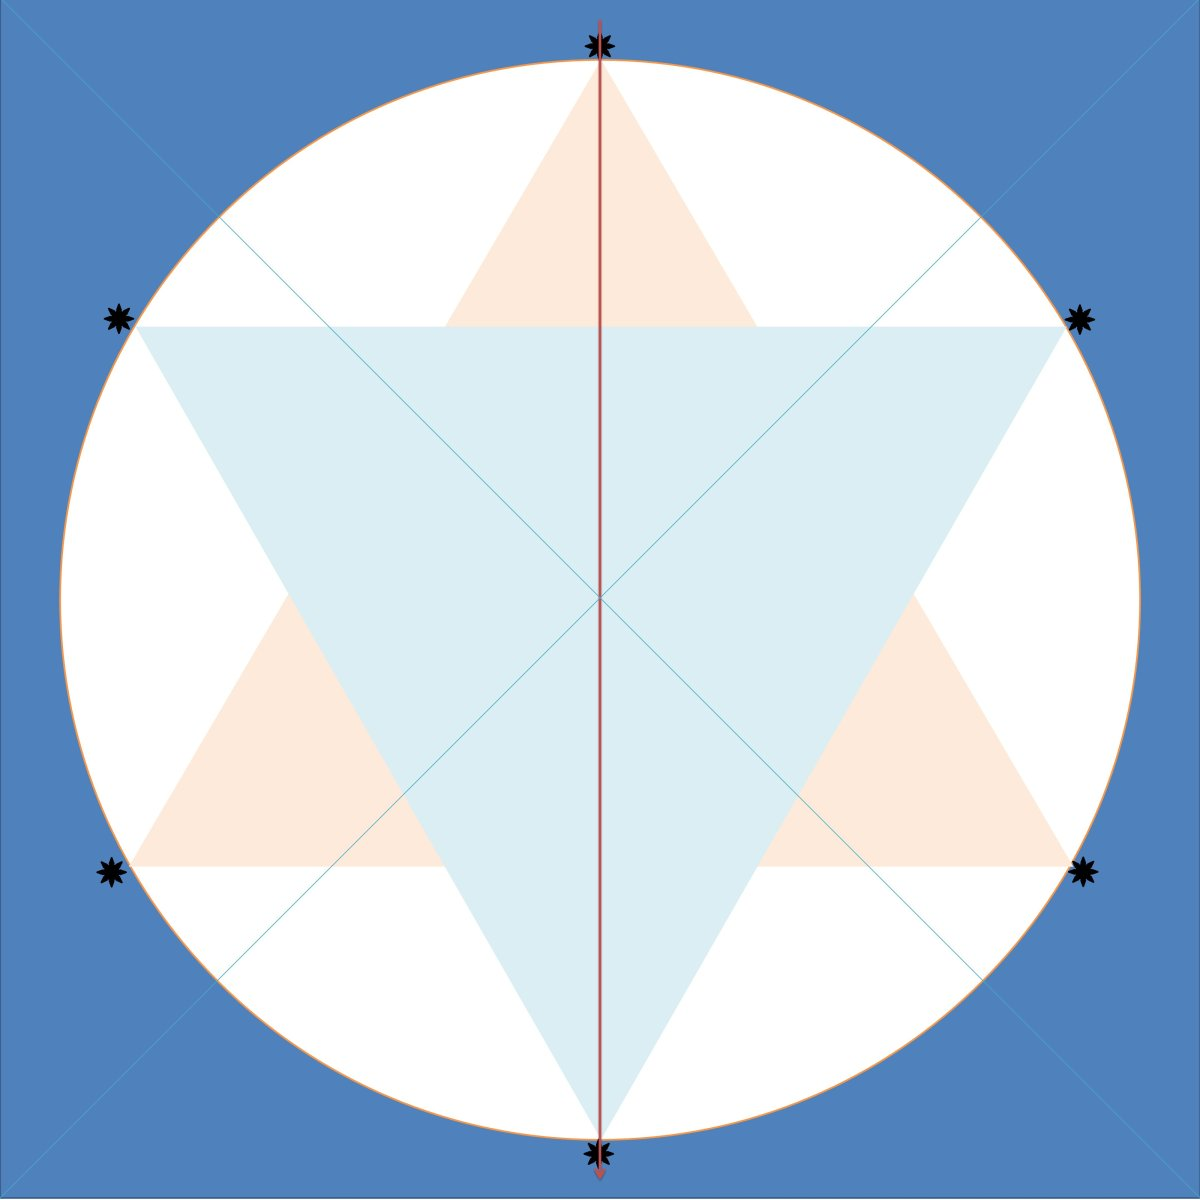 Figure 2 - Two large triangles and 6-point triangles